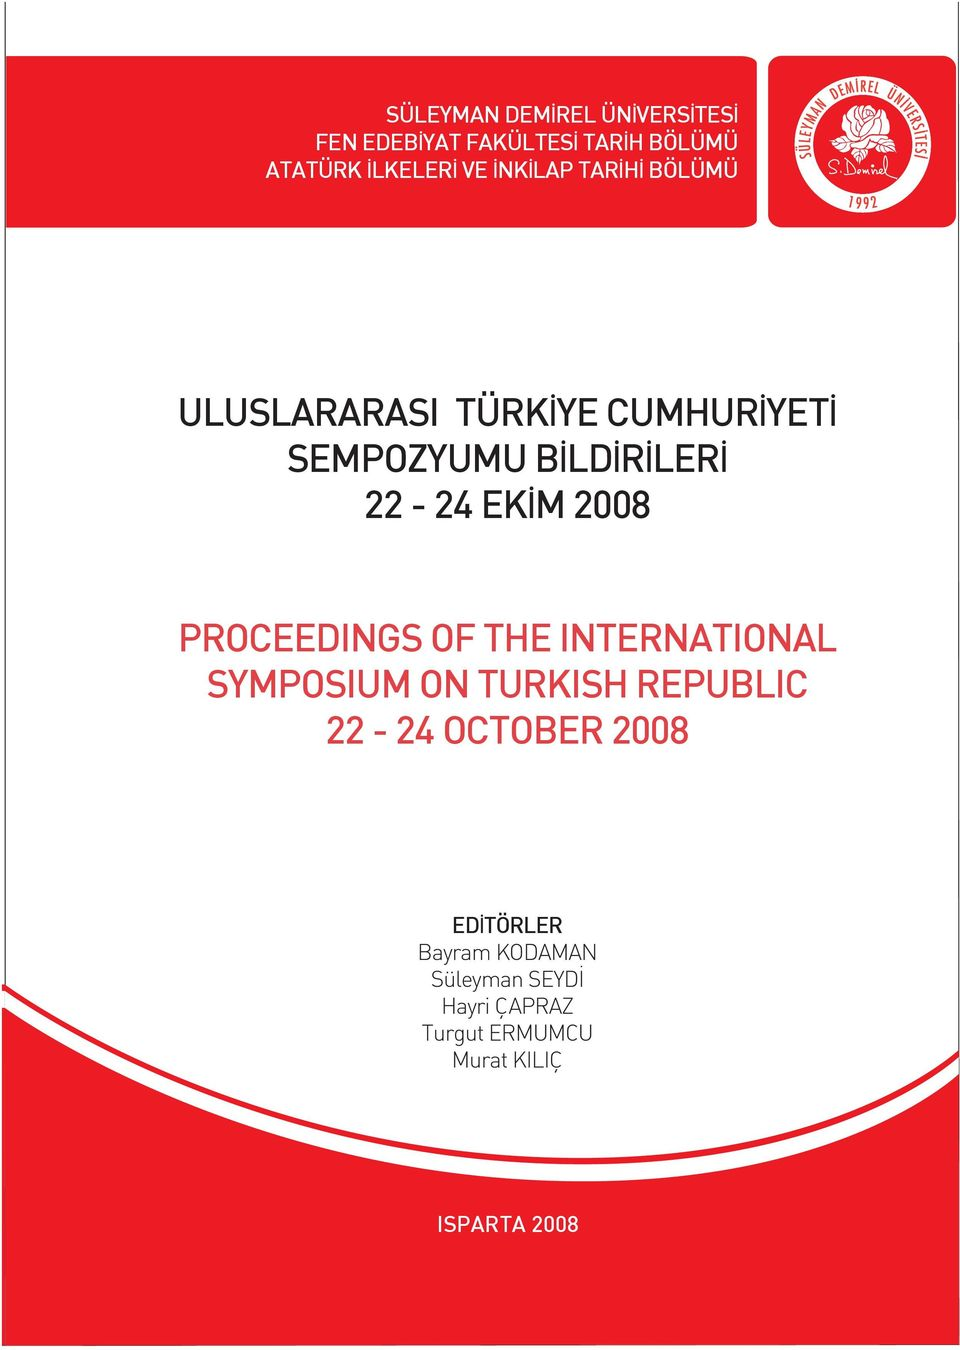 2008 PROCEEDINGS OF THE INTERNATIONAL SYMPOSIUM ON TURKISH REPUBLIC 22-24 OCTOBER 2008